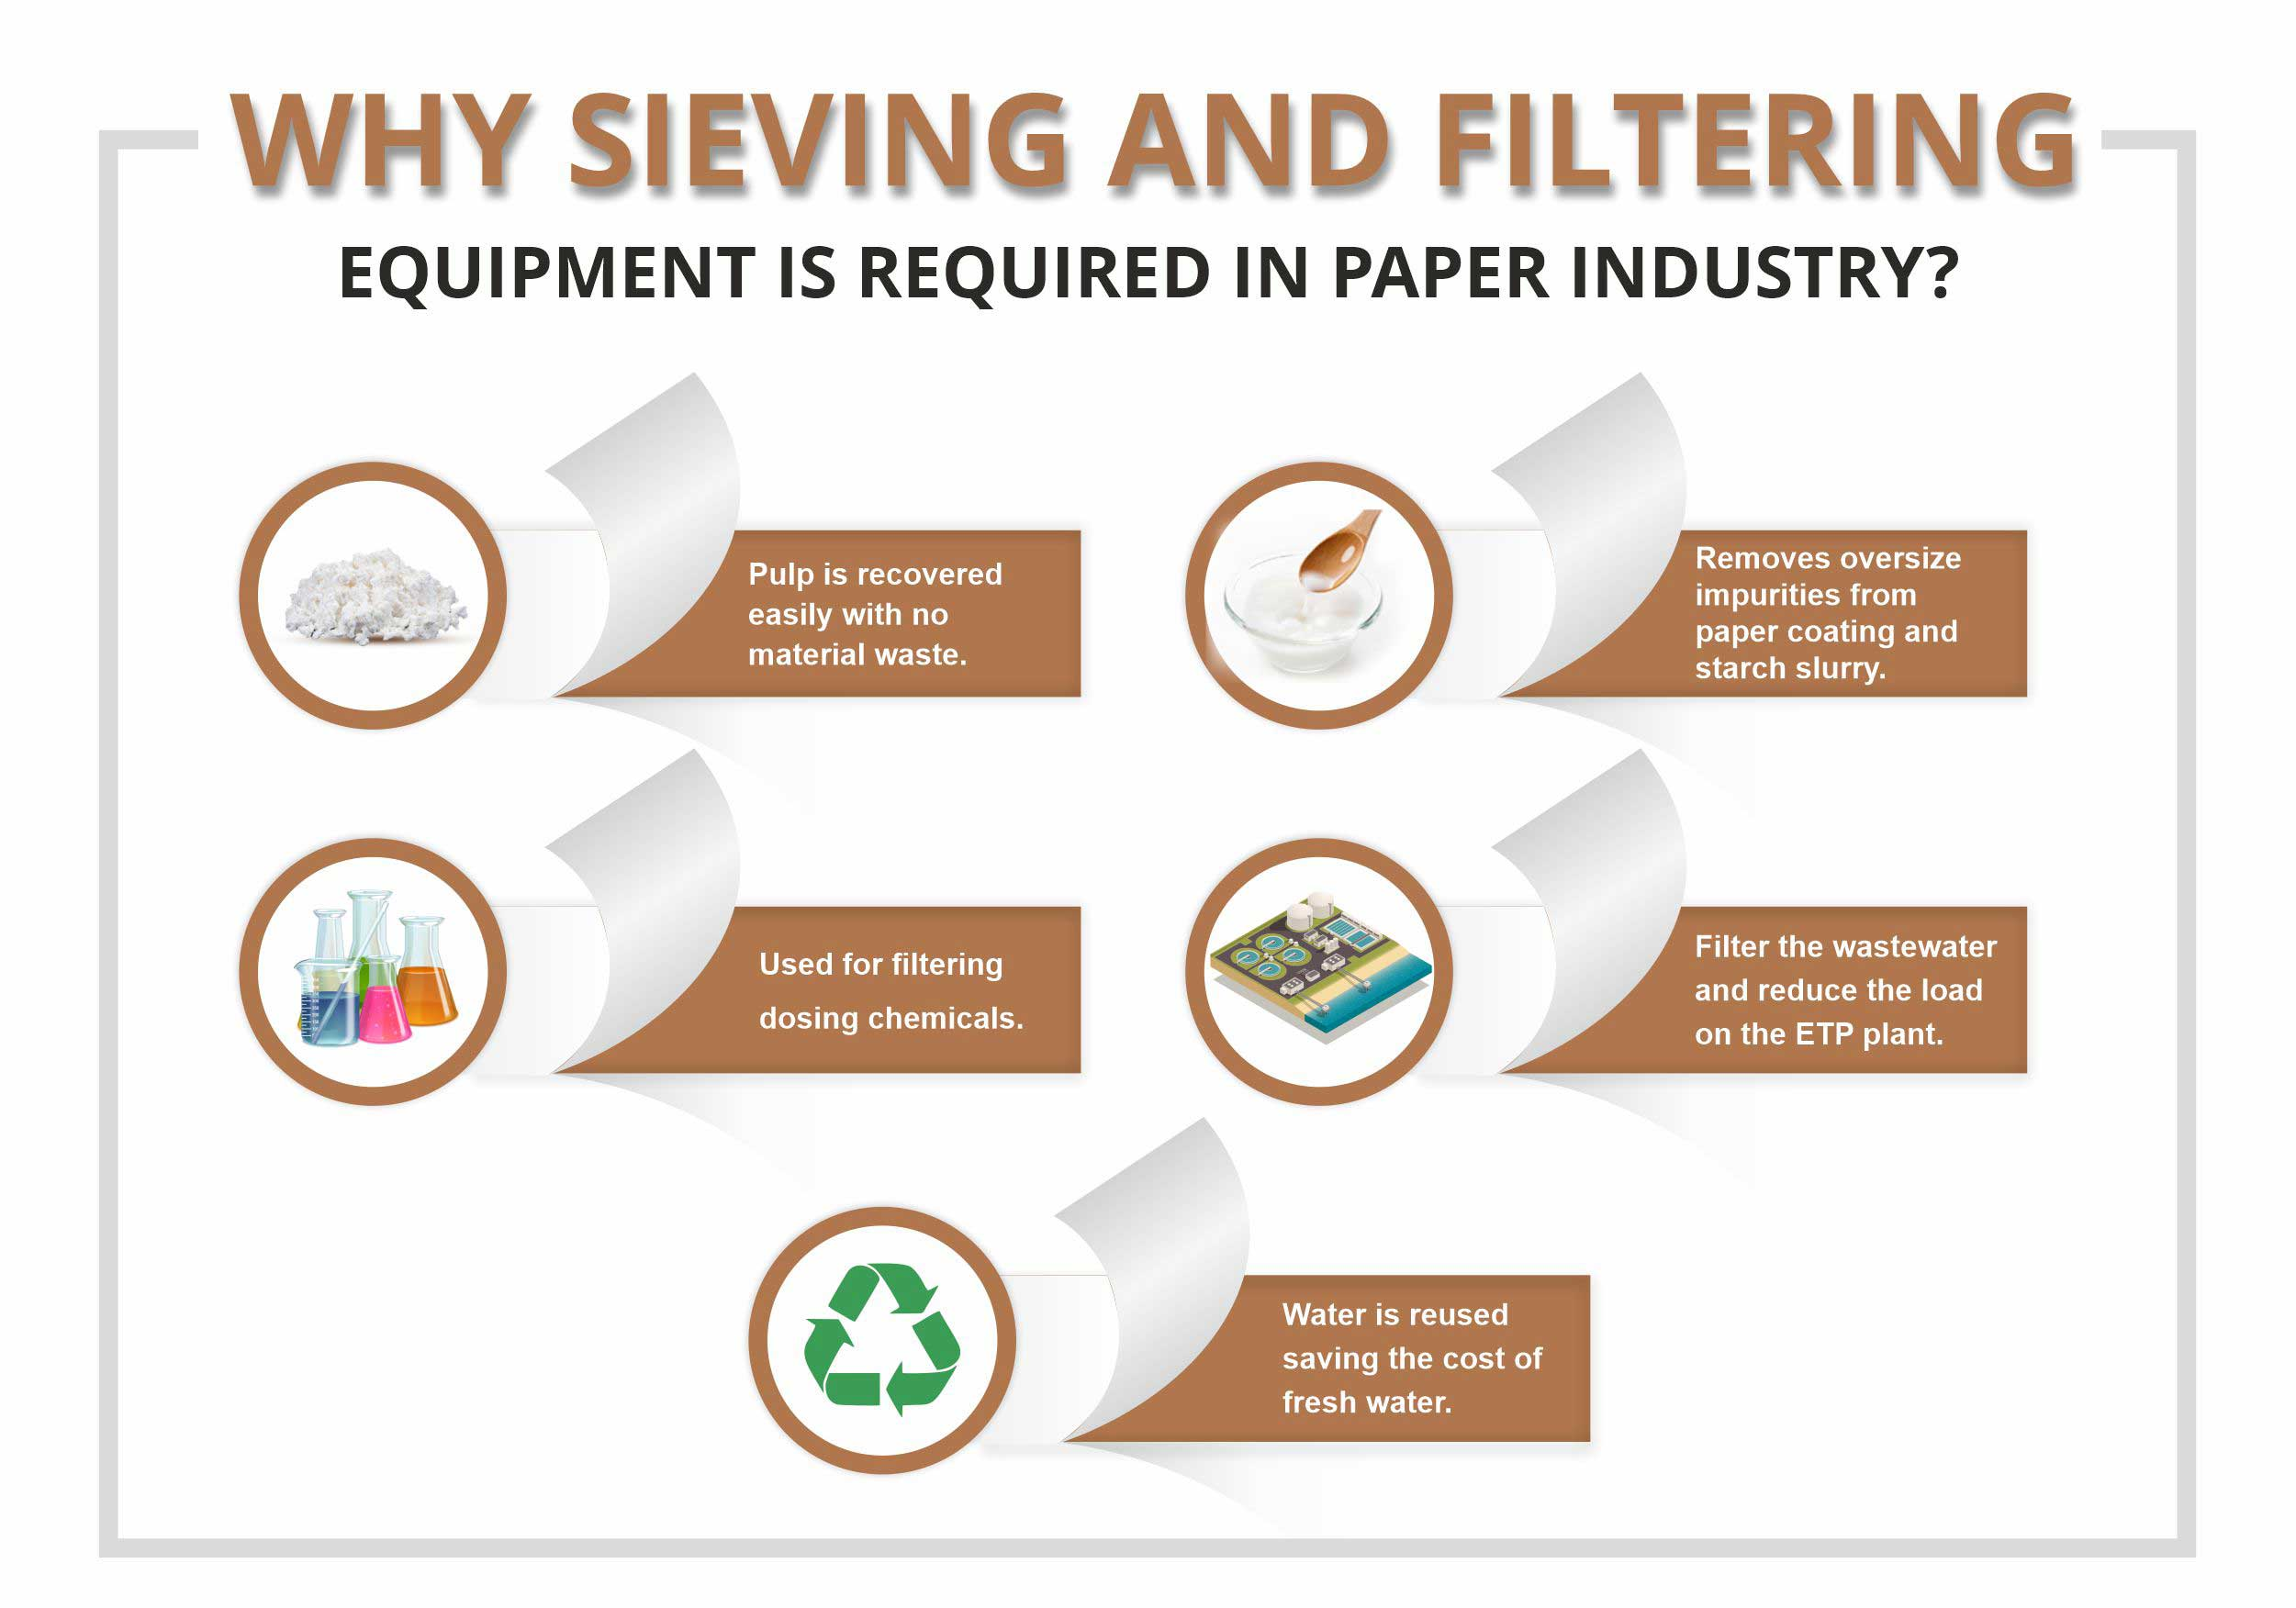 sieving filtering importance paper pulp